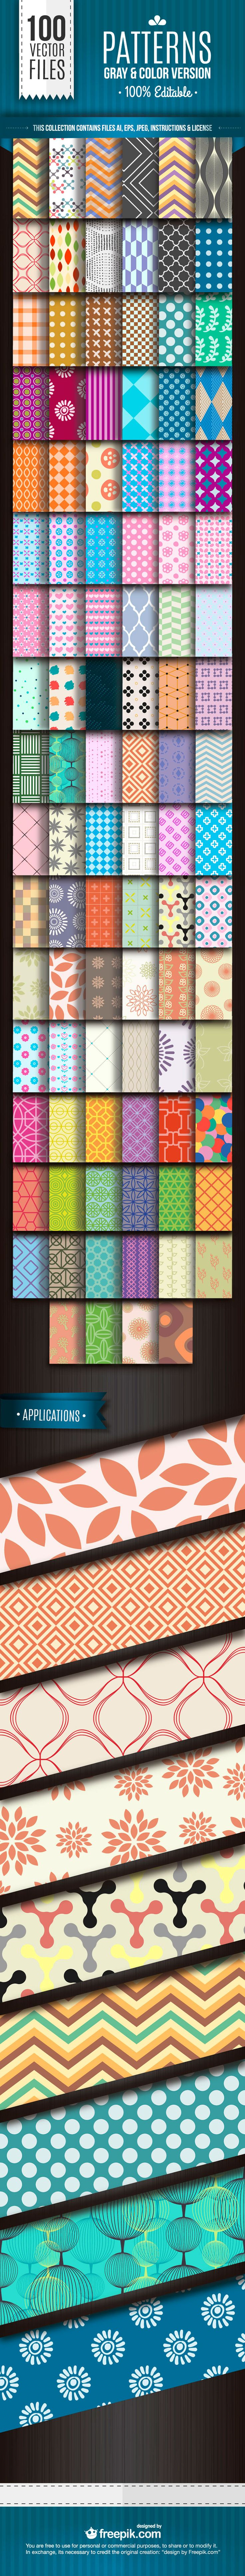 [FREE] Download: 100 Repeating Vector Patterns From Freepik - MightyDeals - We all love flat design, but 'flat' doesn't have to mean boring! If you'd like to enhance your projects with some of the coolest repeating patterns around then look no further, because our friends at freepik.com have provided 100 of them, absolutely free of charge, for our vistors to download.